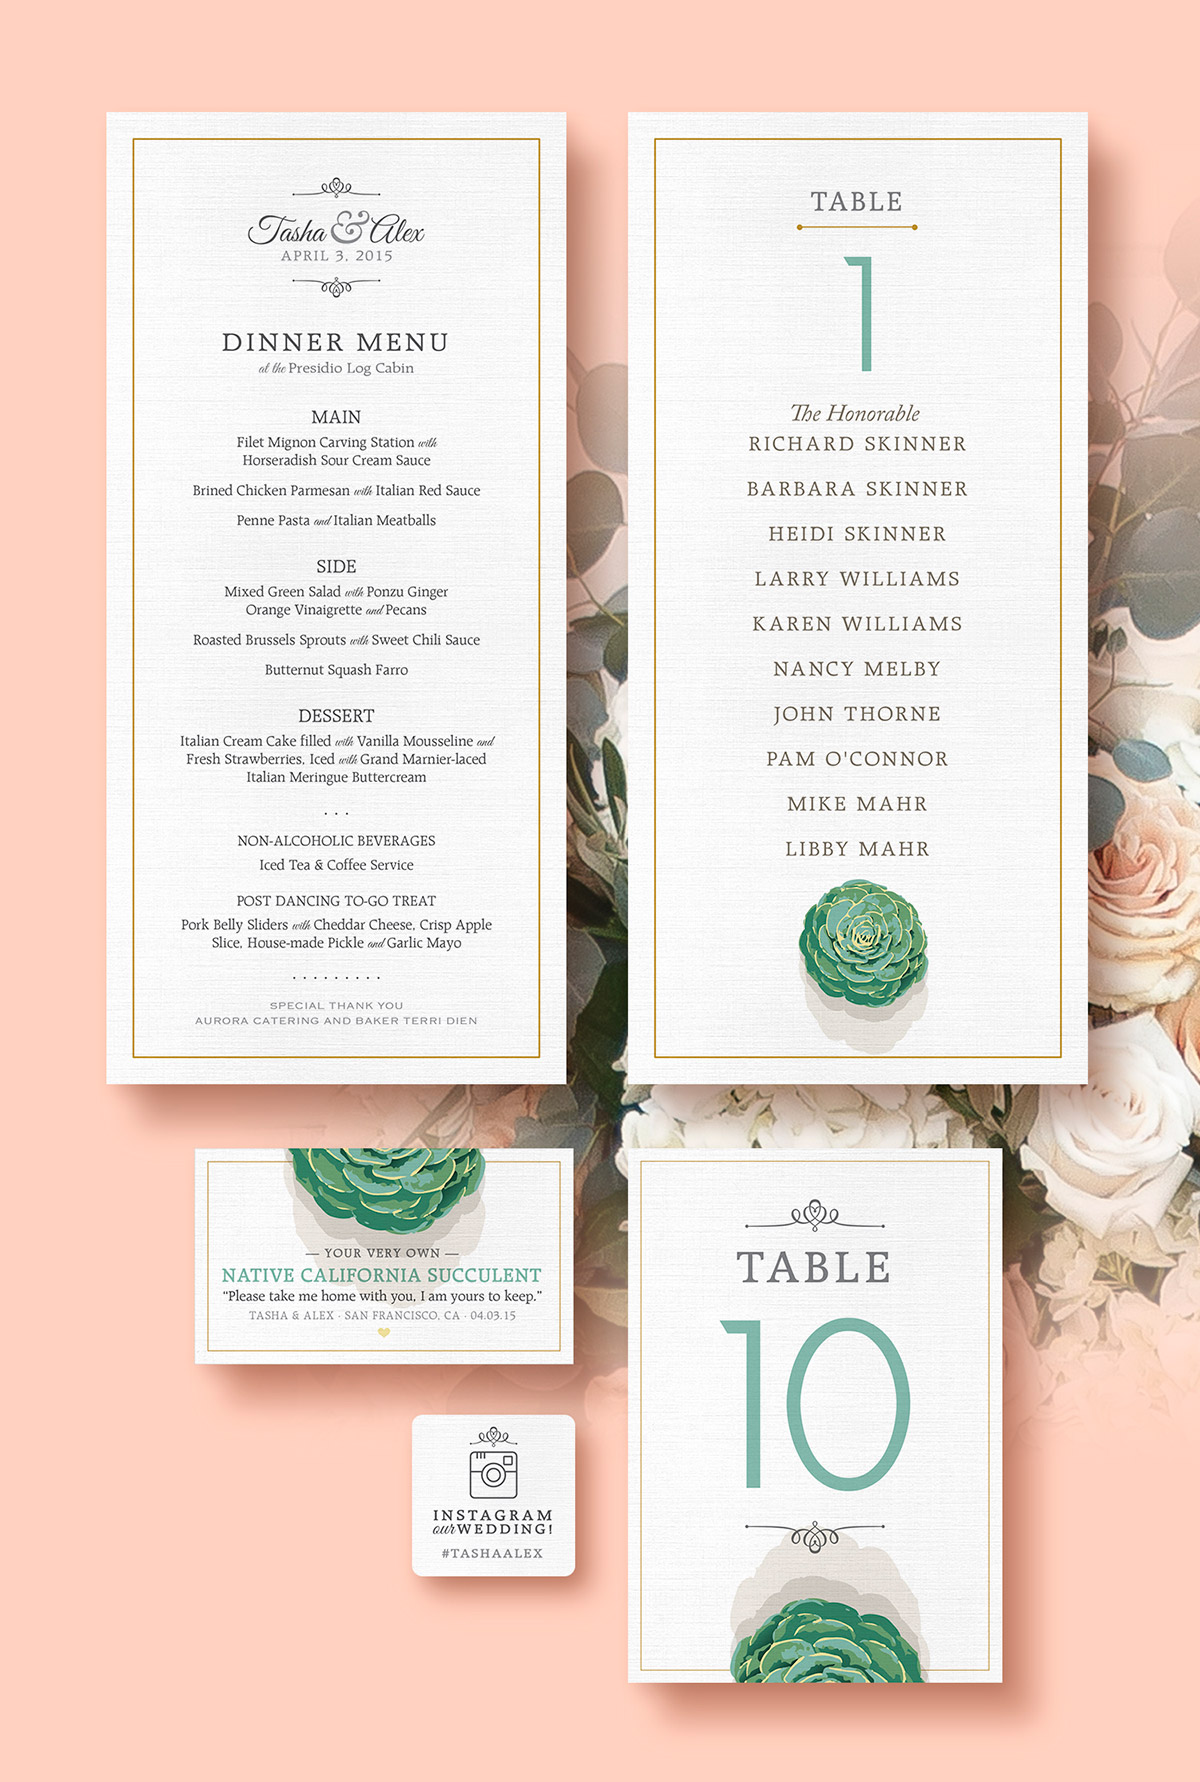 Wedding dinner menu, table sign, gift cards and sticker designs